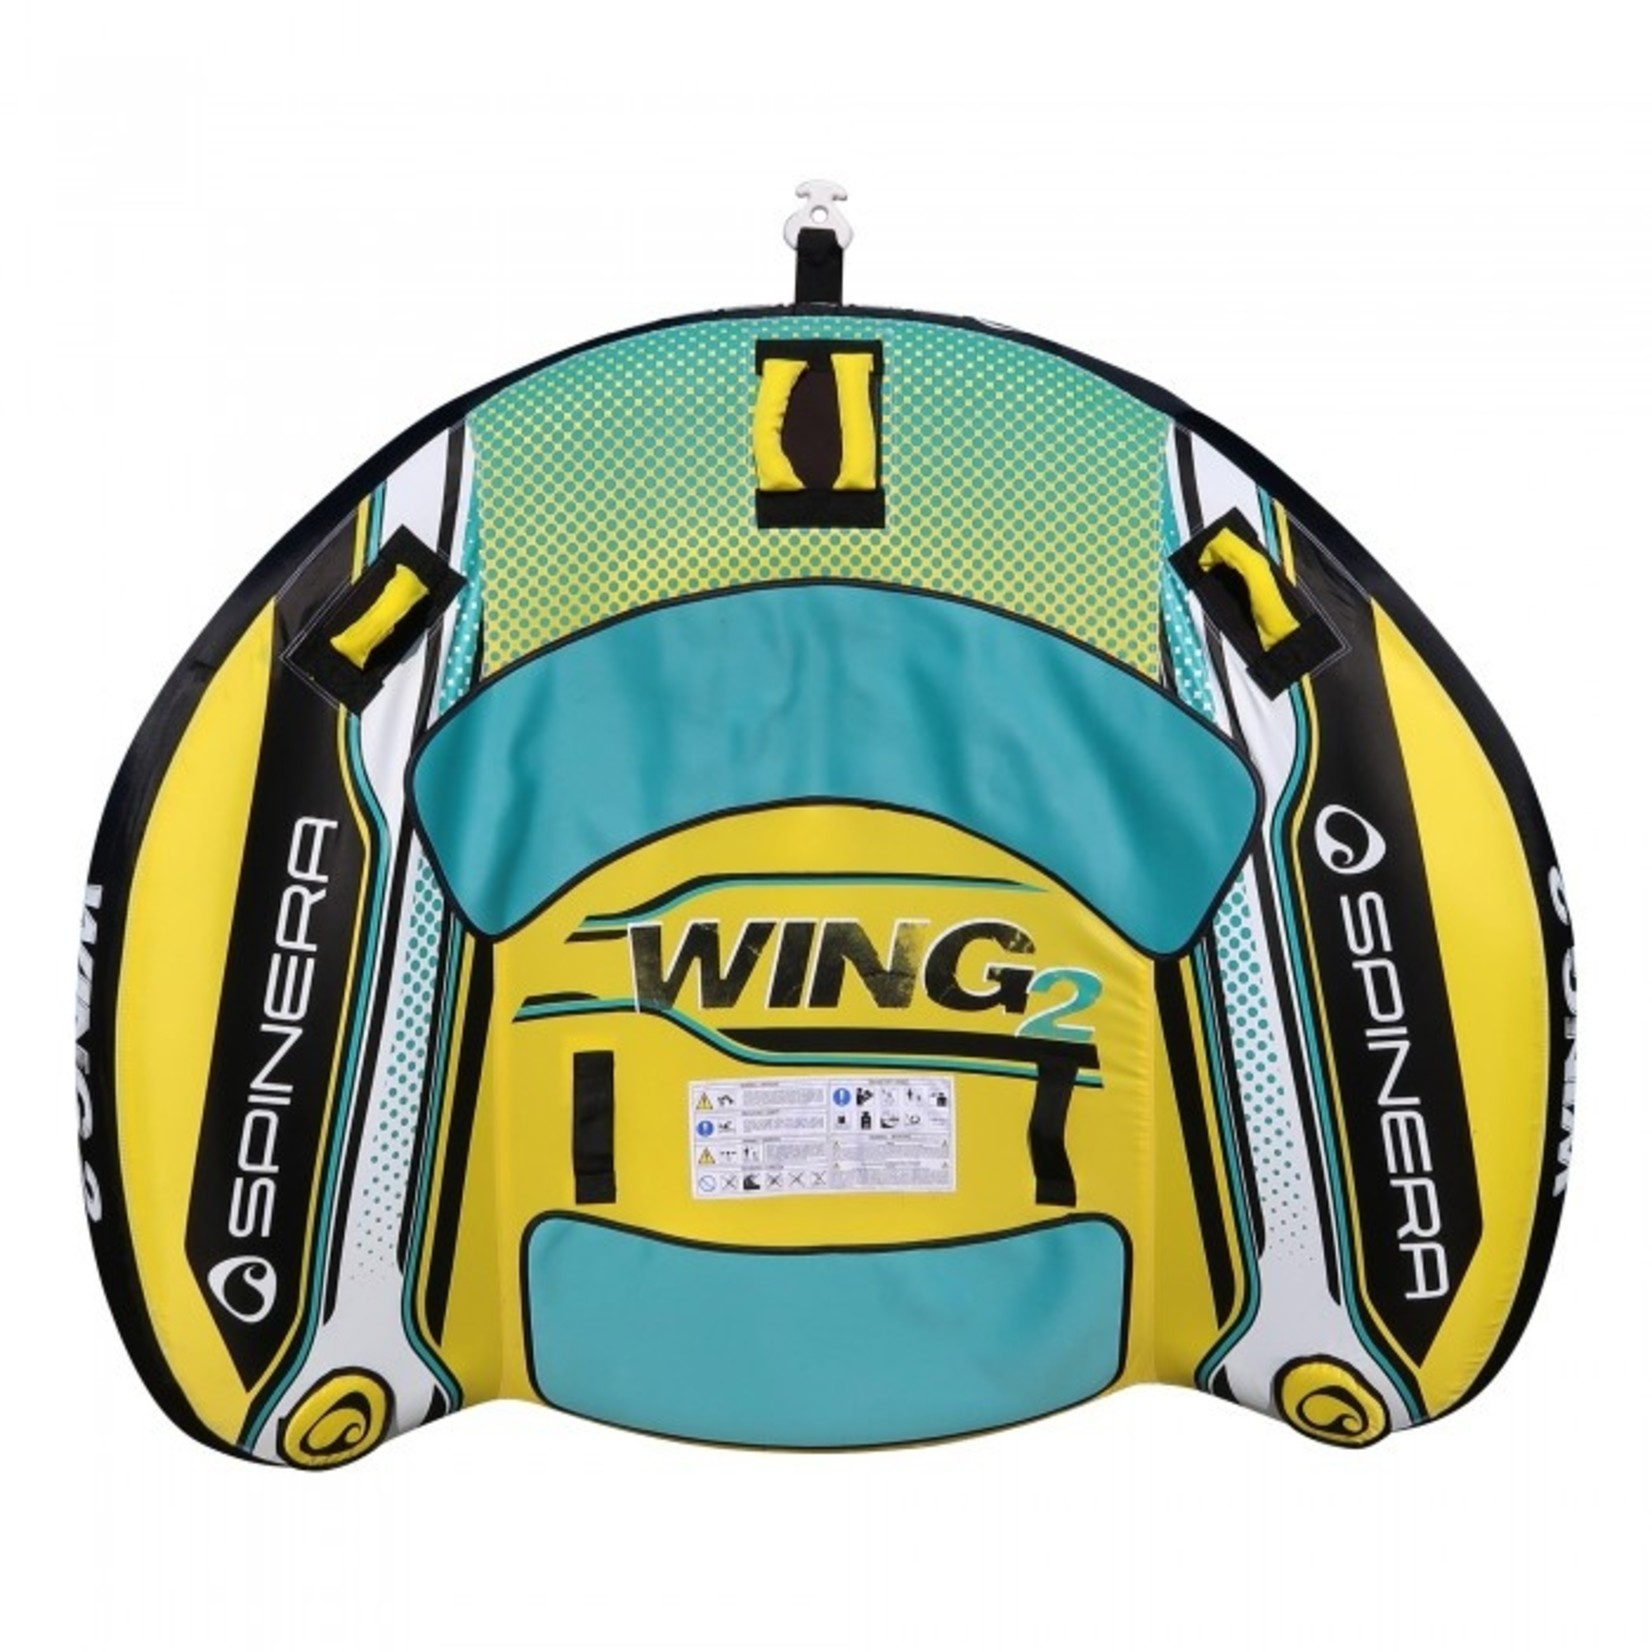 Spinera Wing 2 - Double Tube